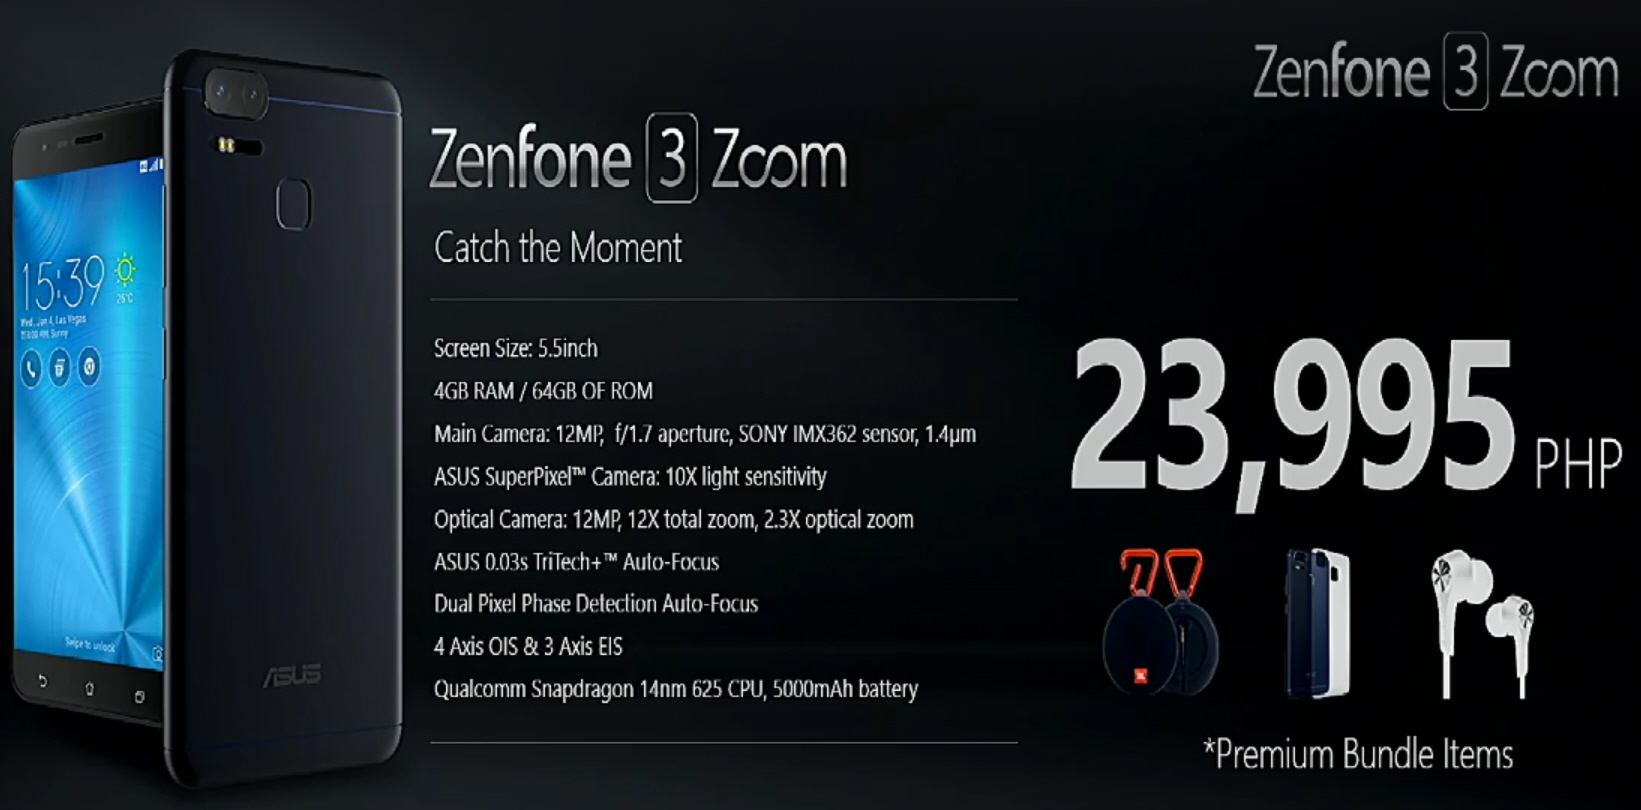 Philippines Officially Gets Zenfone 3 Zoom ZE553KL And